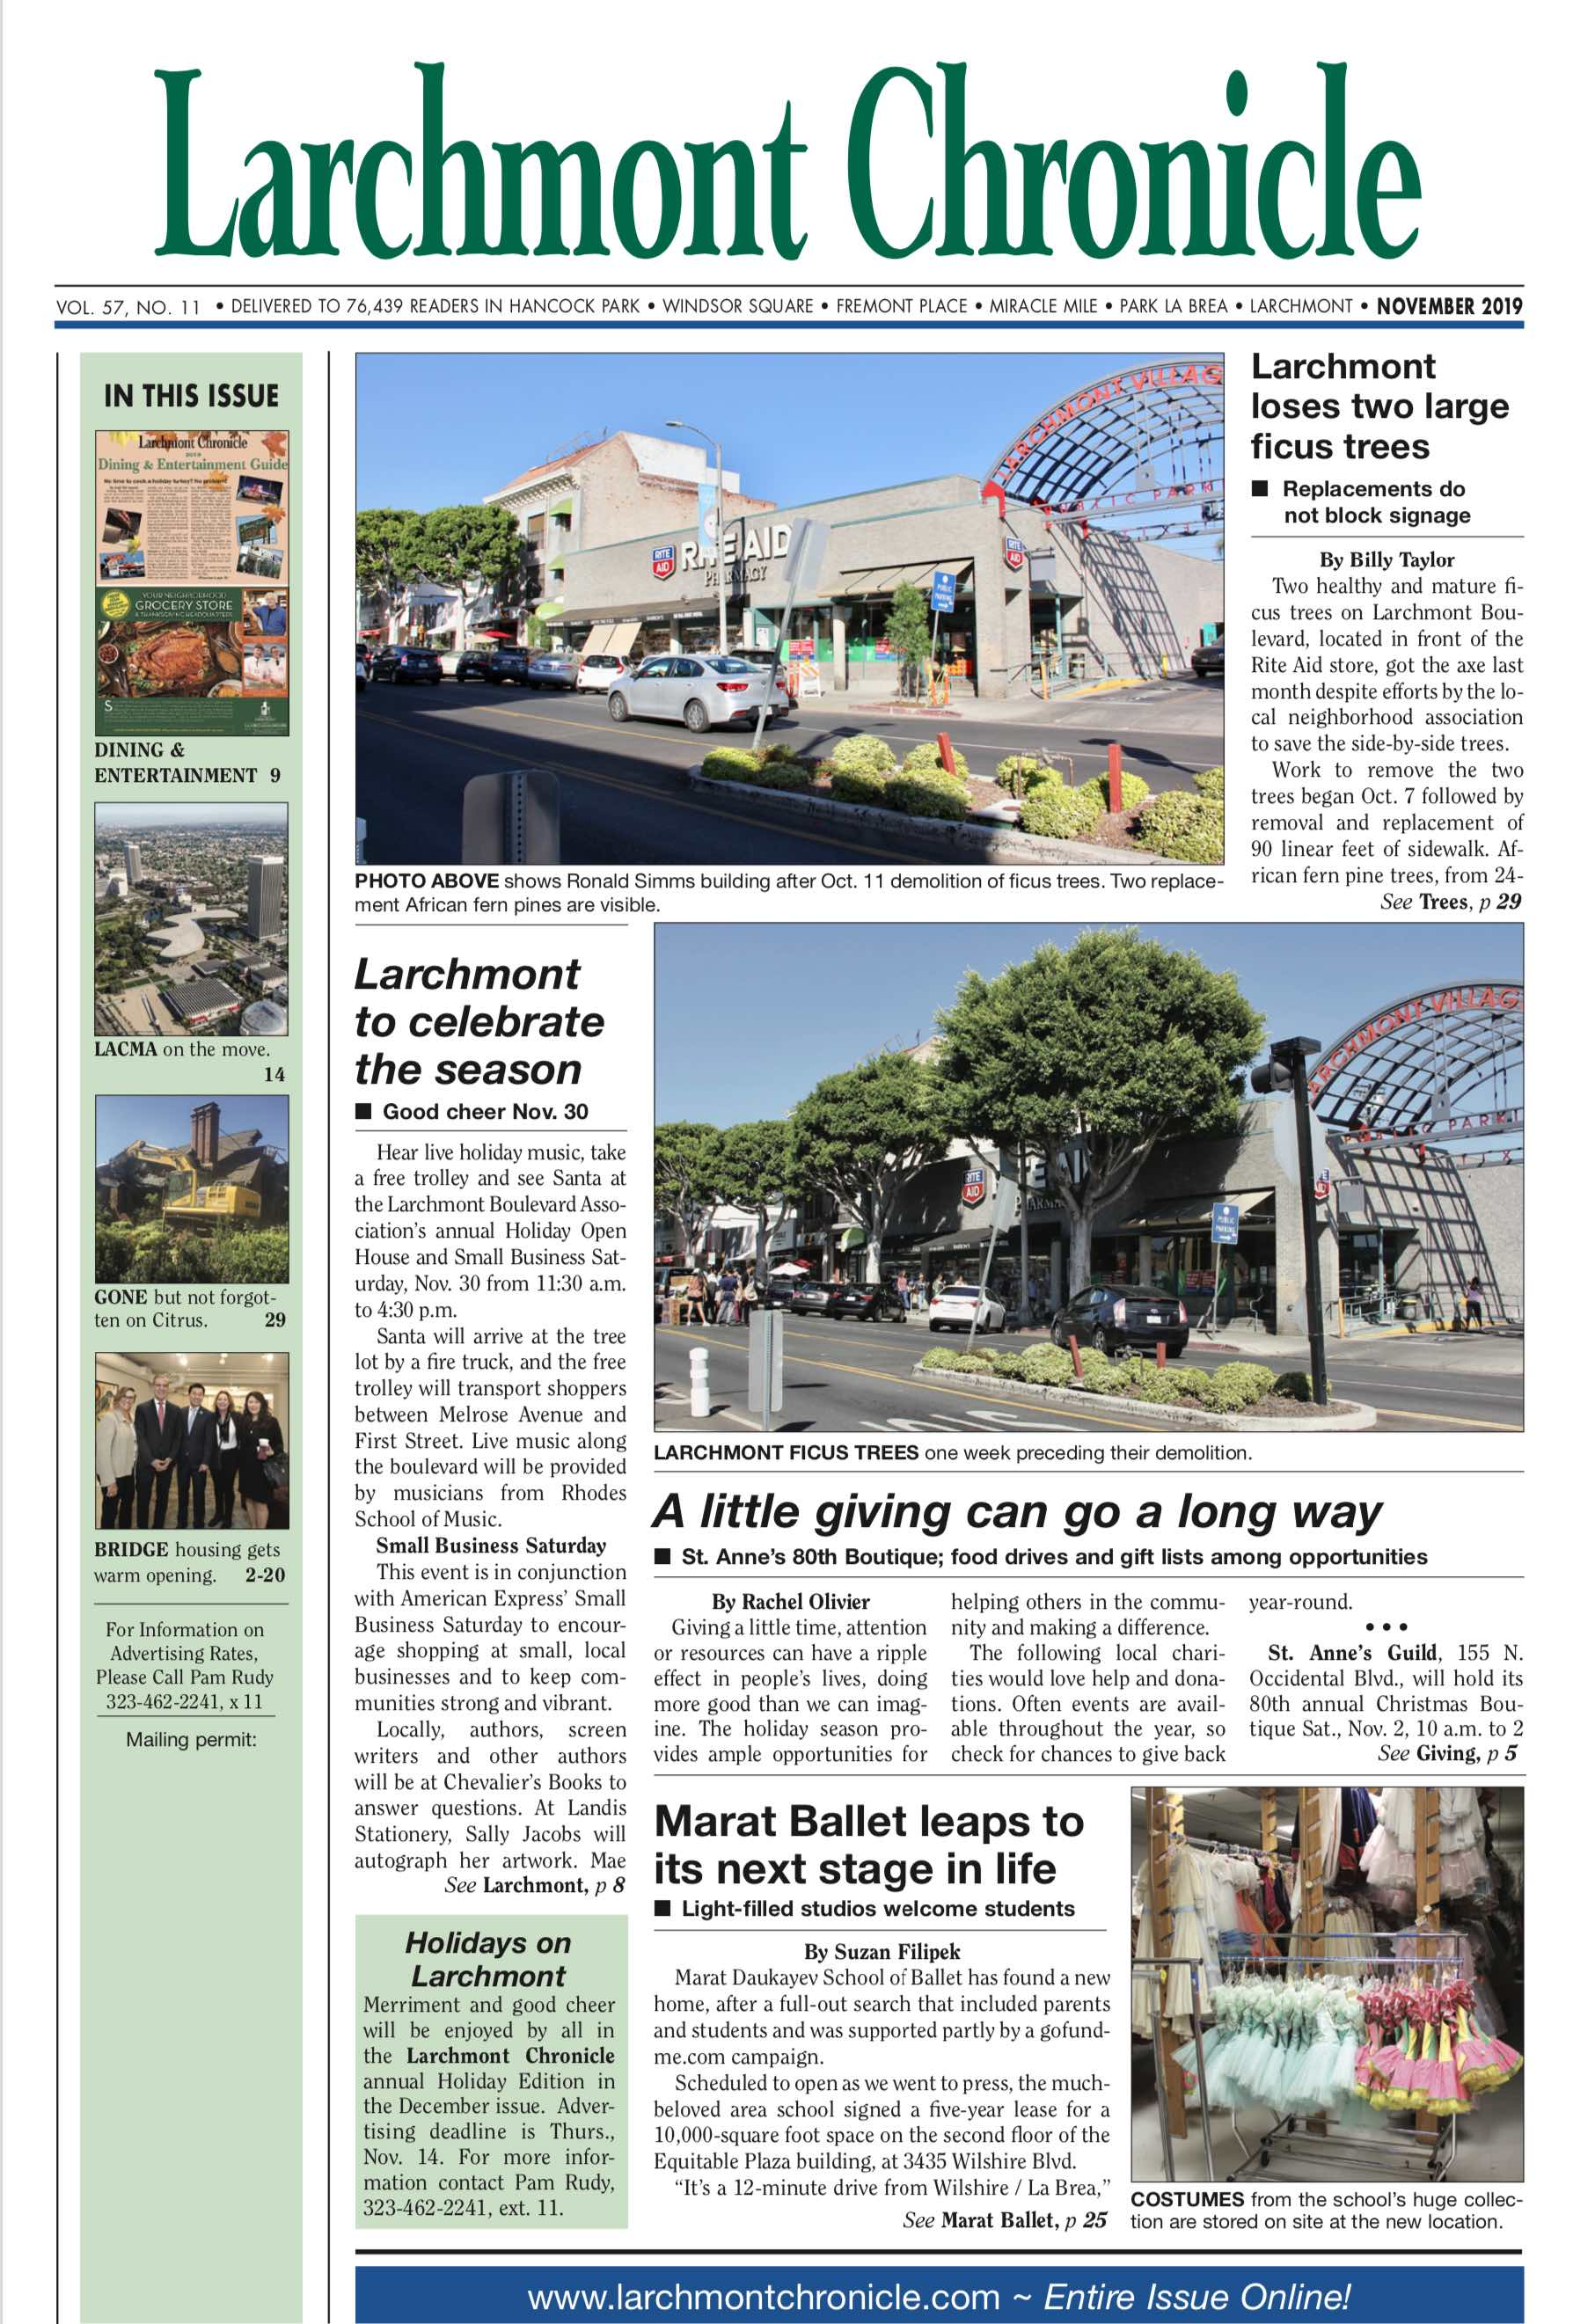 Larchmont Chronicle November 2019 full issue